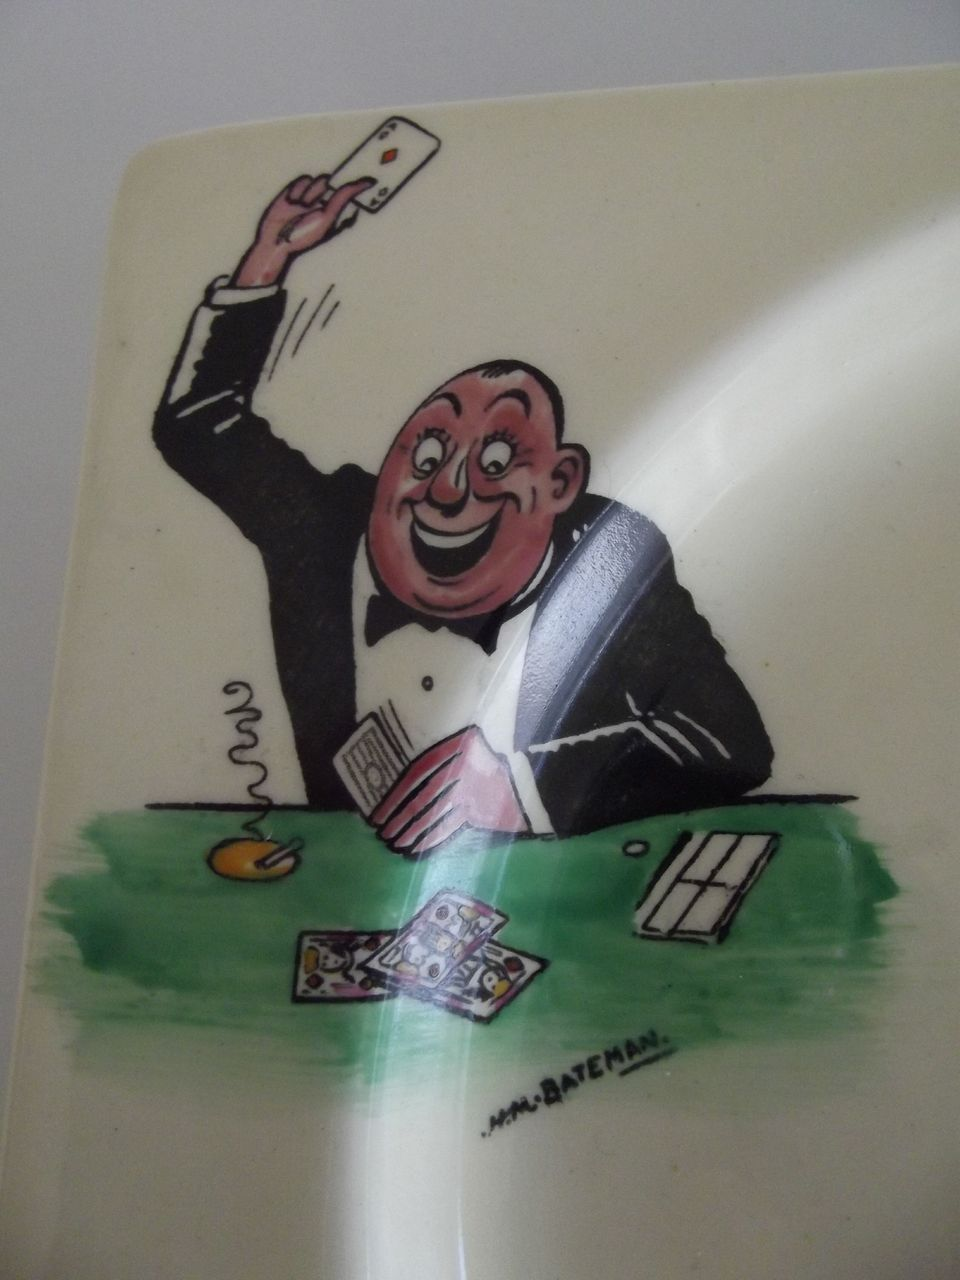 Biarritz Gambling Plates Card Players